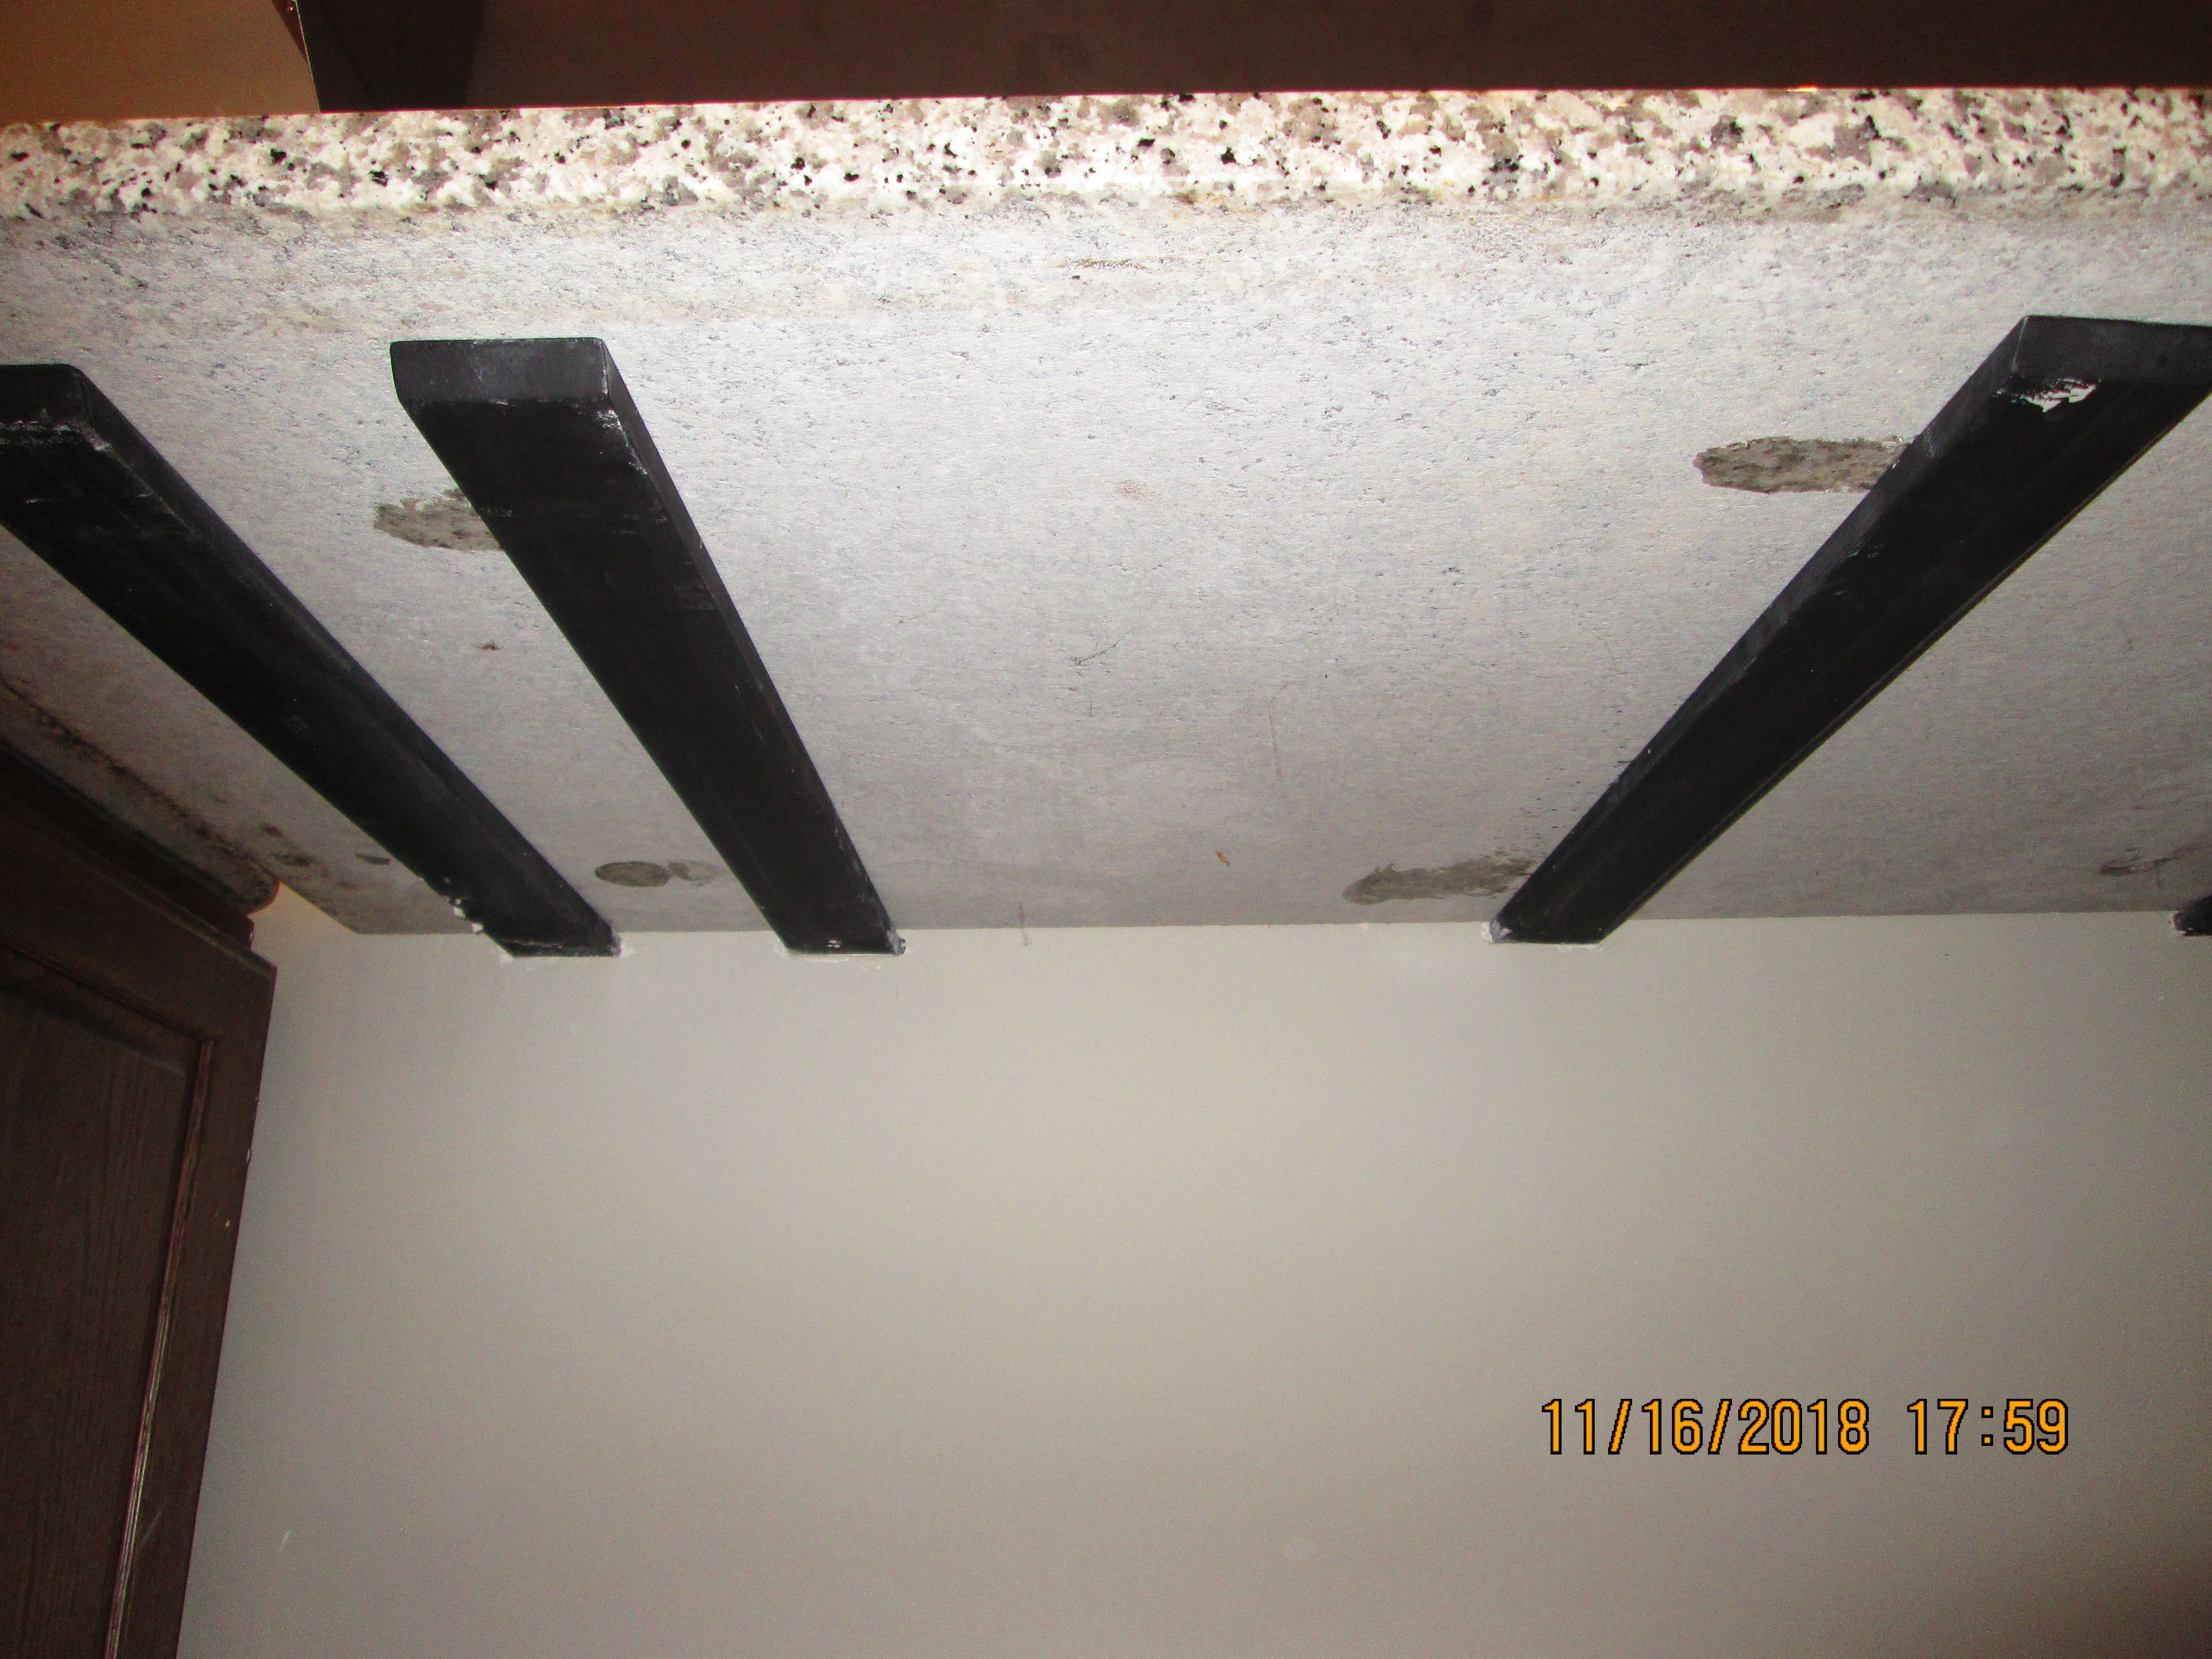 You Can See The Heavy Steel Supports Under The Granite Countertop The Rest Of The Support Is Screwed Onto The S Stud Walls Wall Shelf Brackets Granite Bracket